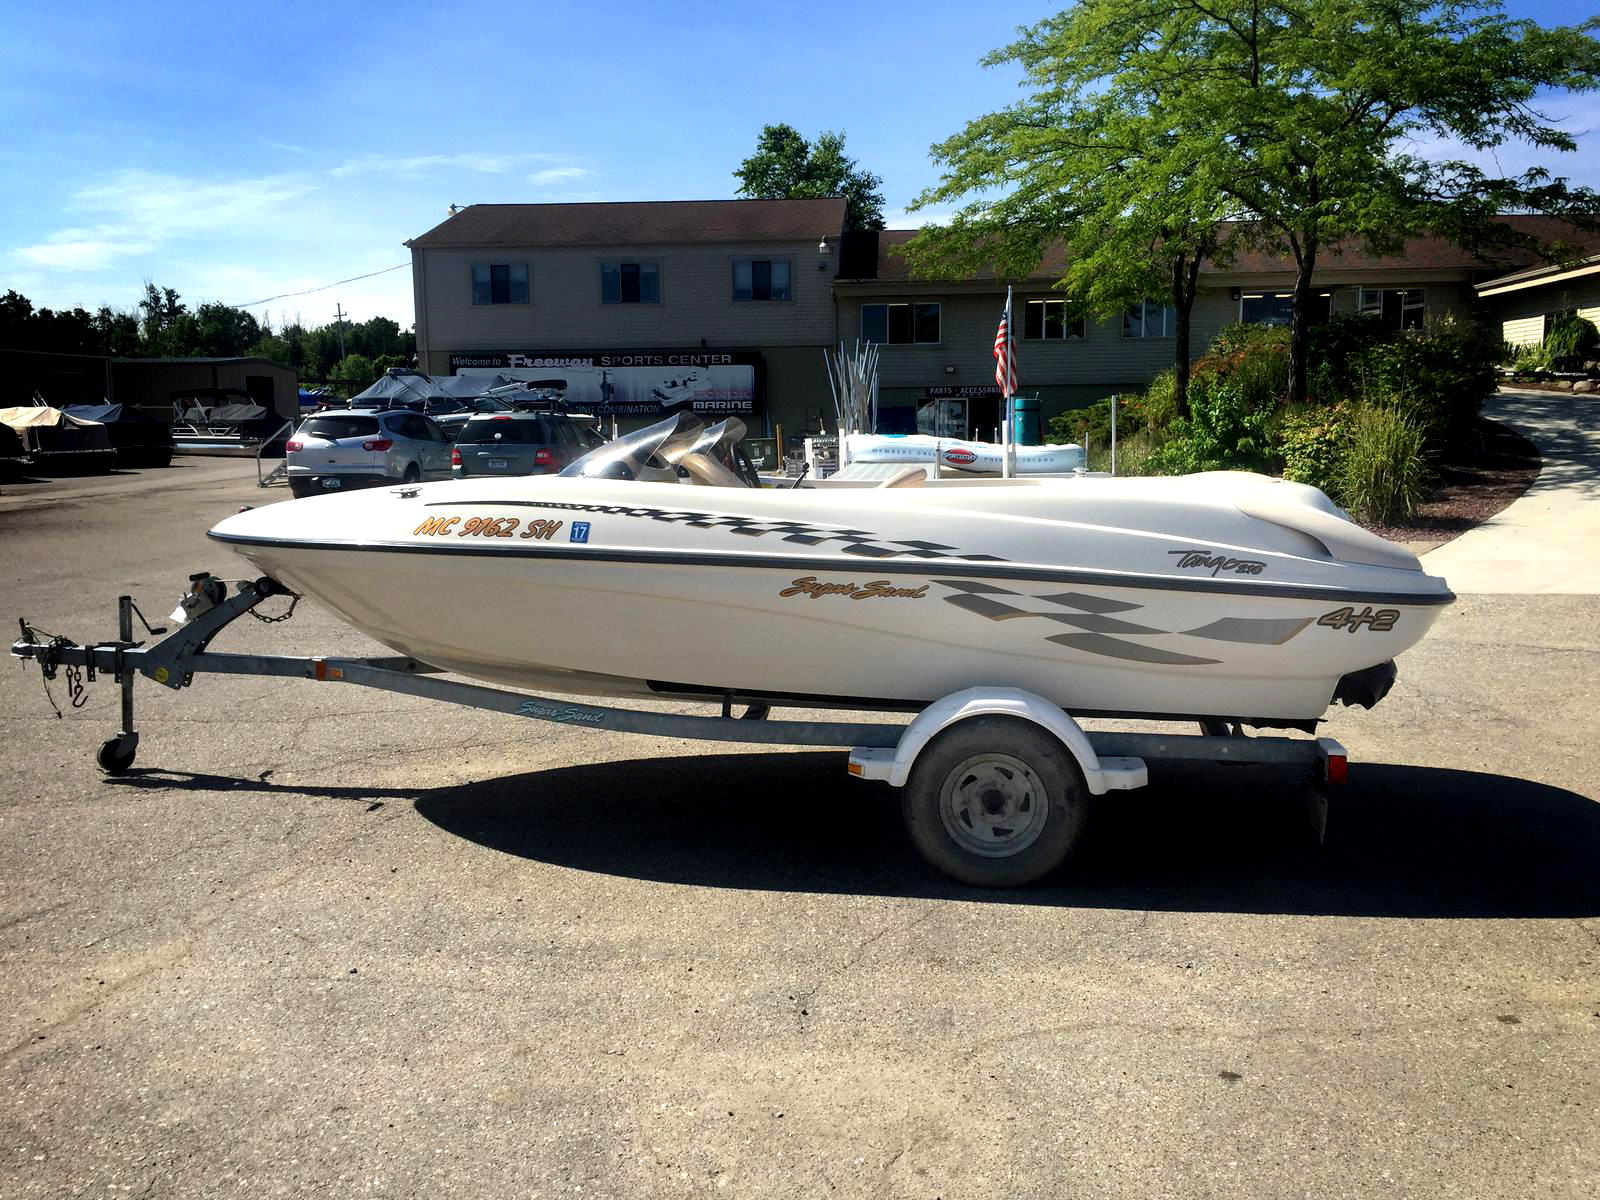 2001 SUGARSAND Jet Boat 9390 16 2 stroke 210 V6 trailer included 6995